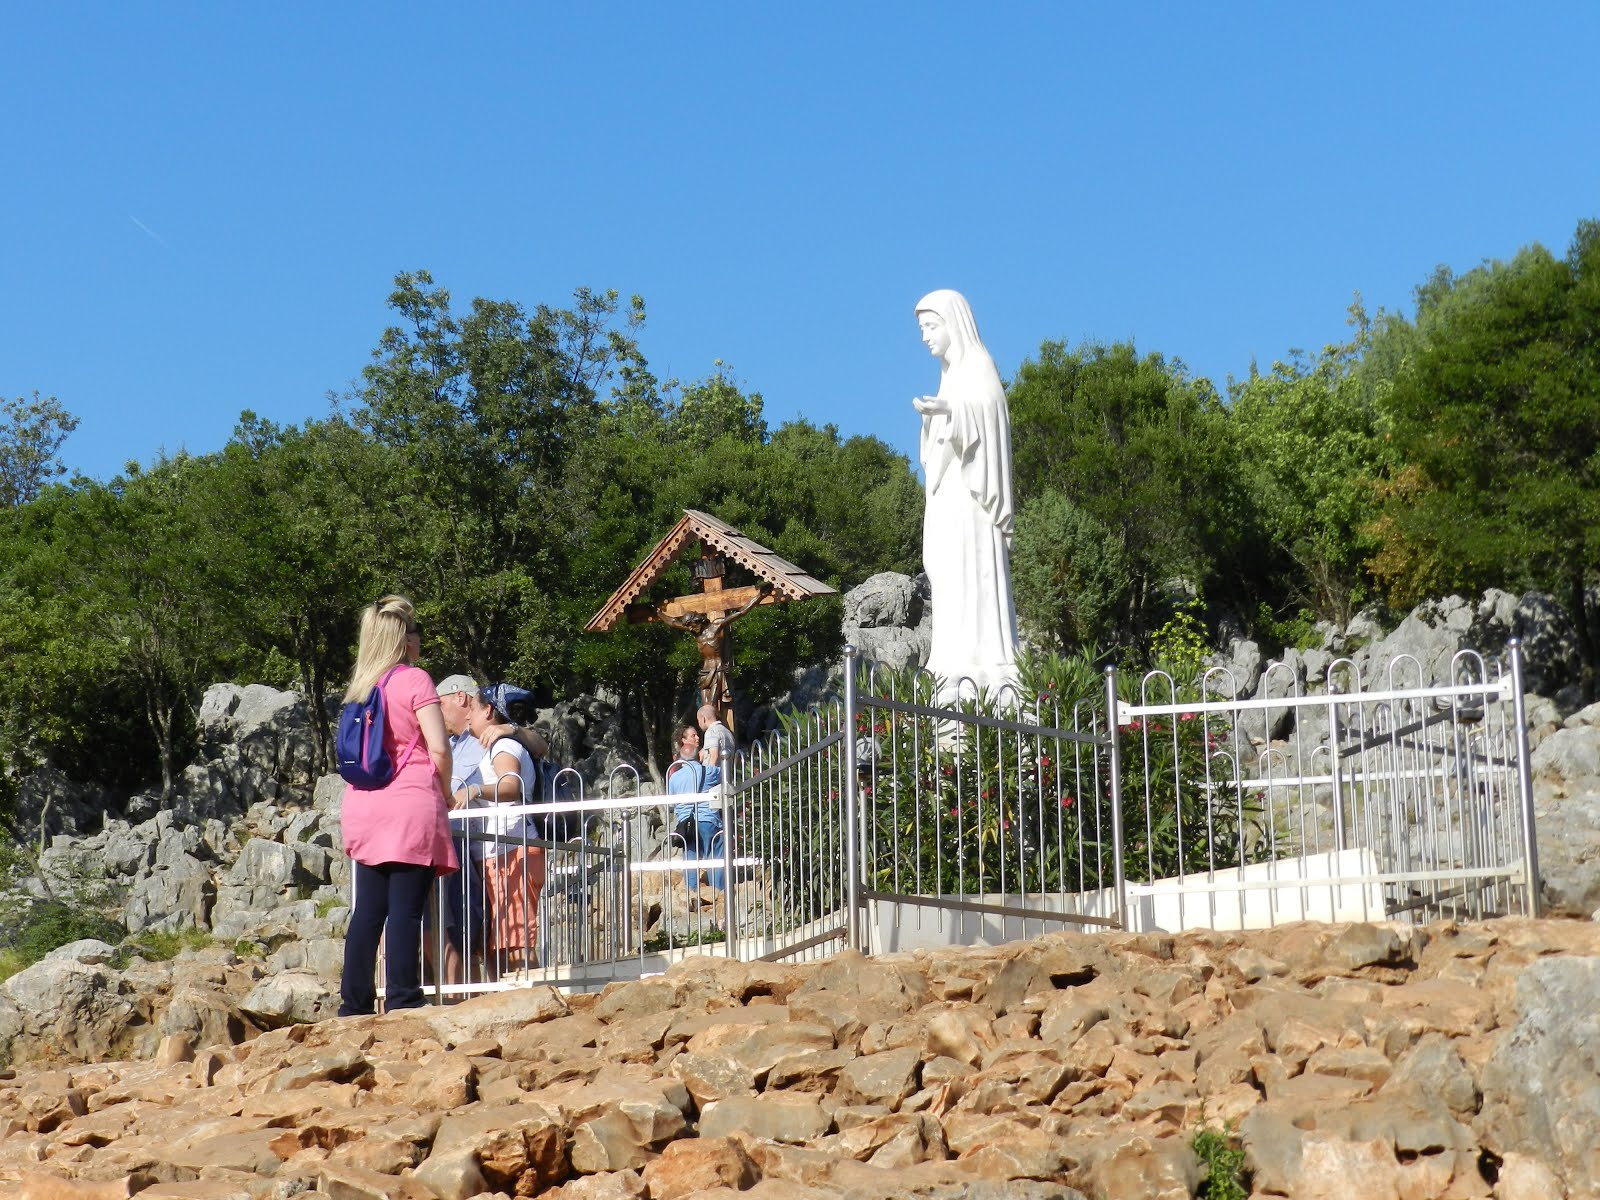 Our Lady's September 2, 2019 Message From Medjugorje